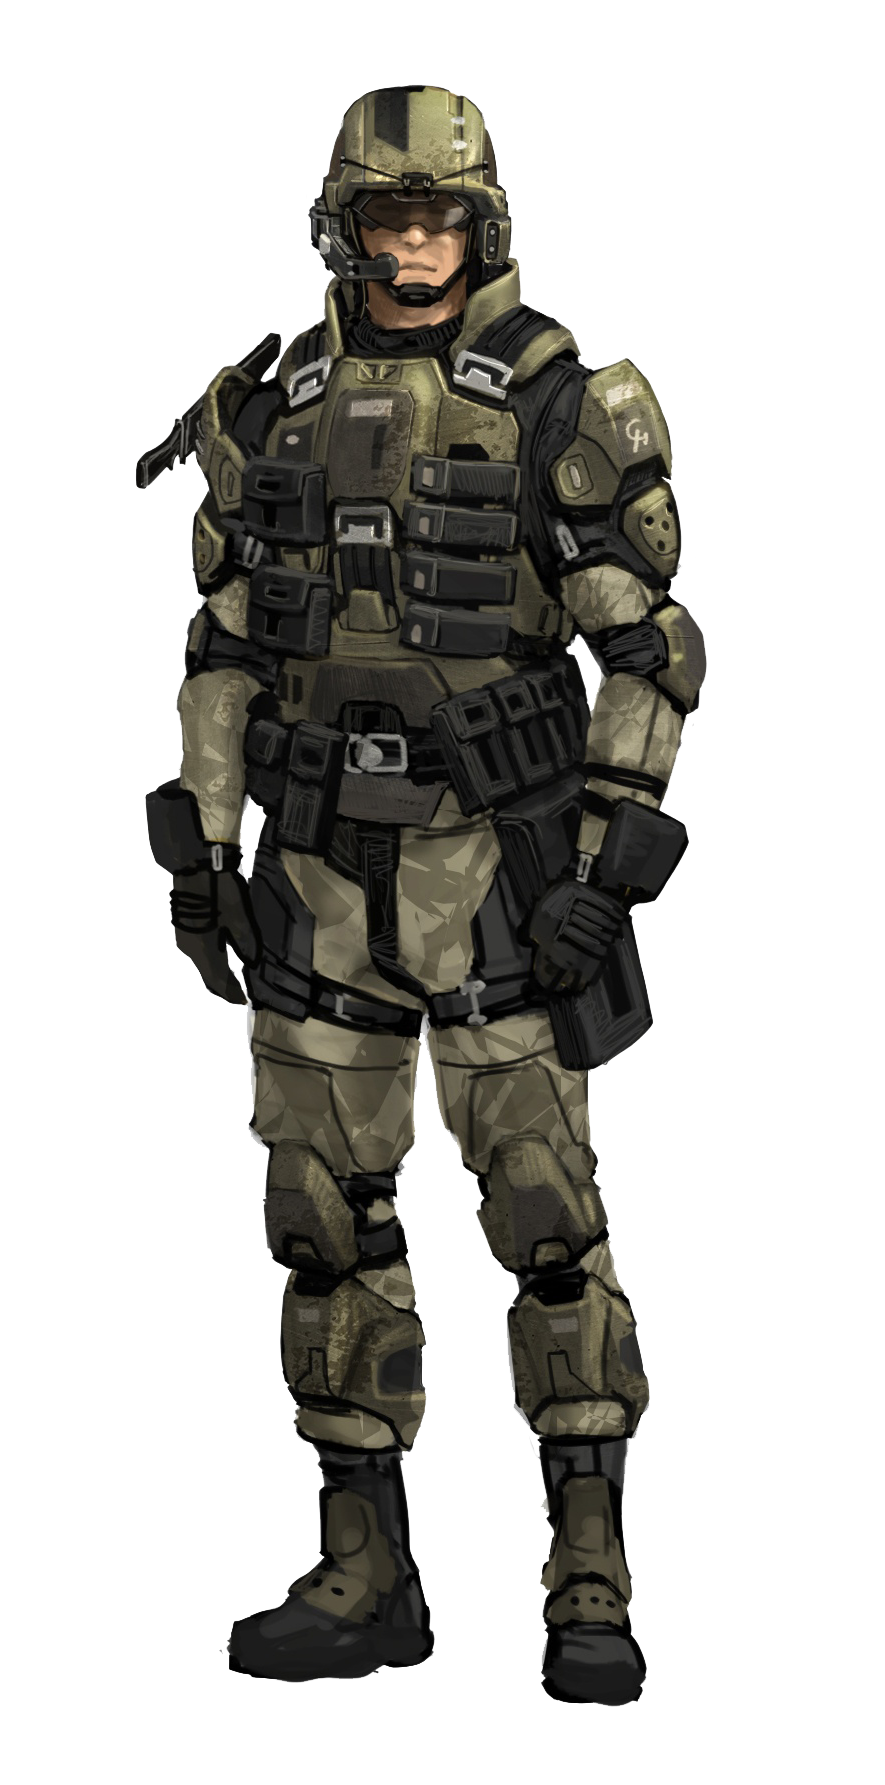 Transparent soldier marine. Anyone want new old